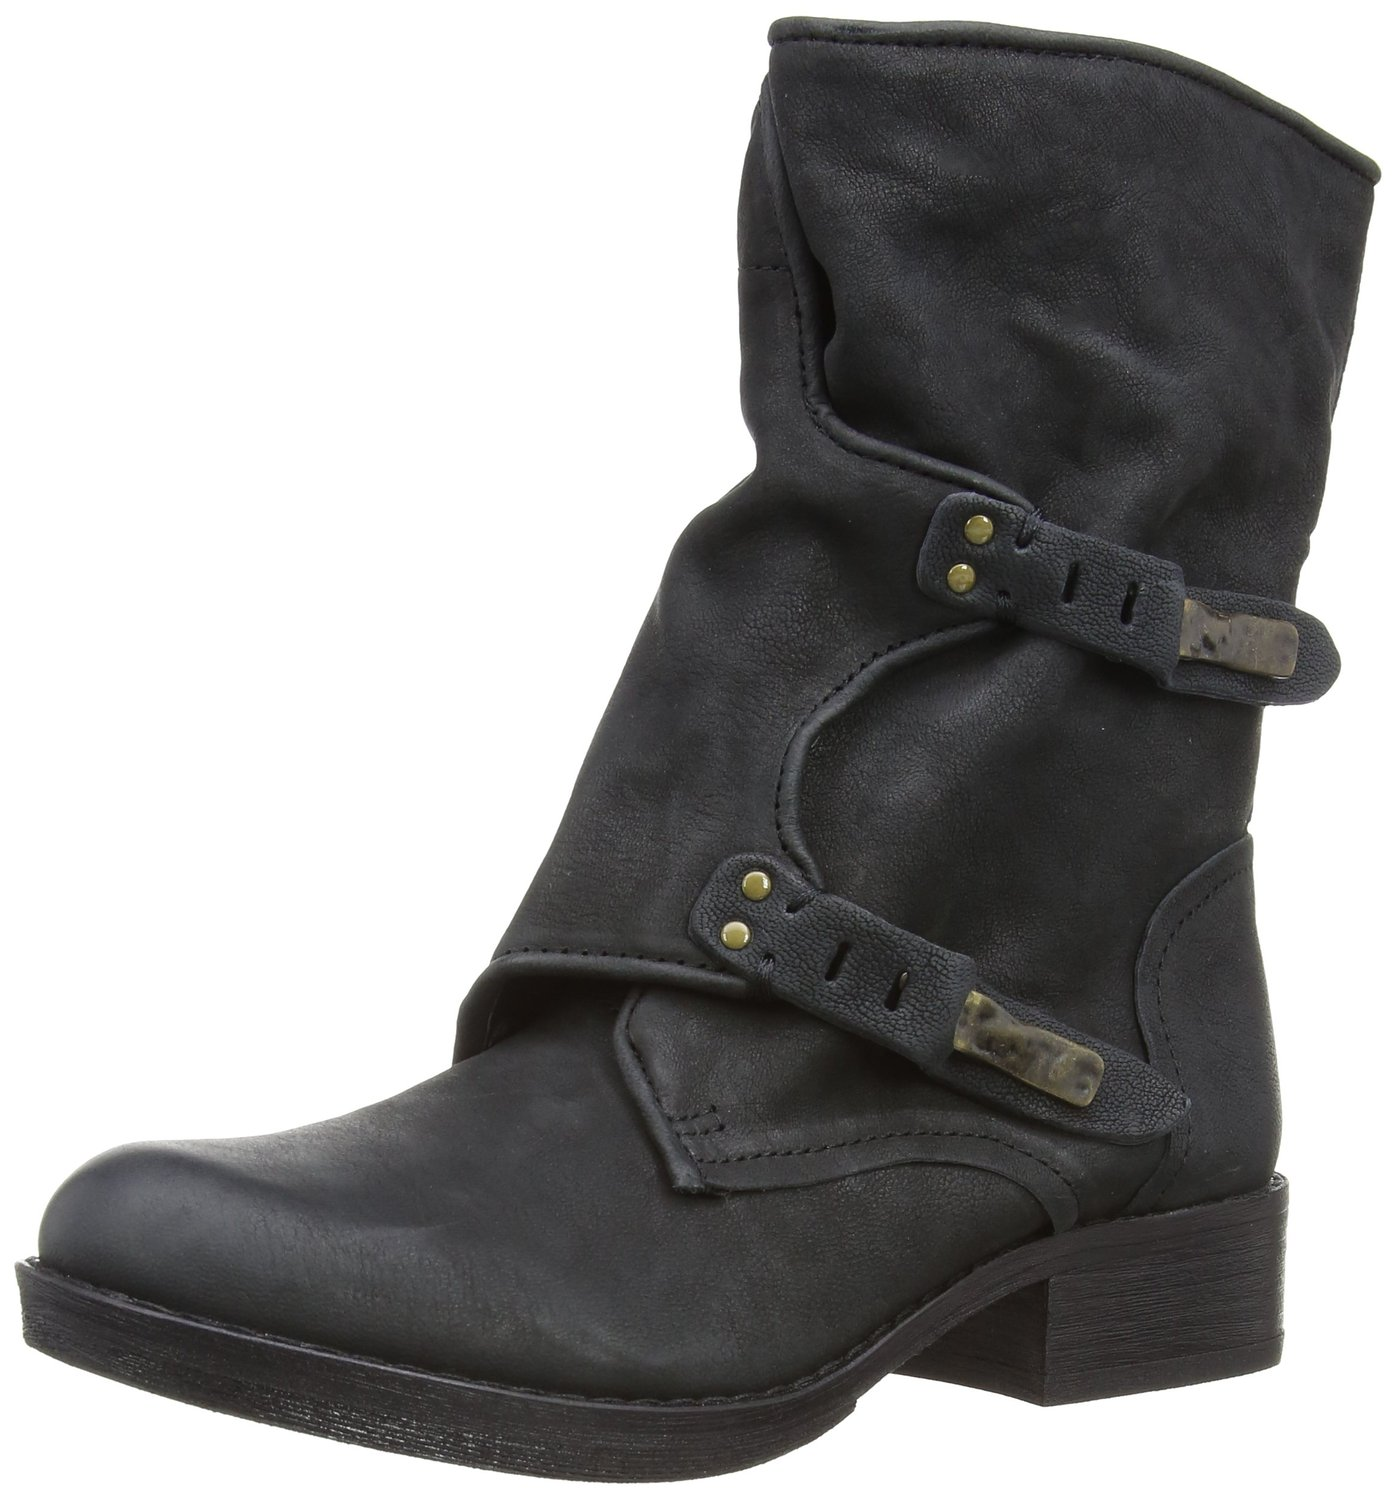 b105912f947e8 Sam Edelman Ridge Mid Calf Boot Black Color